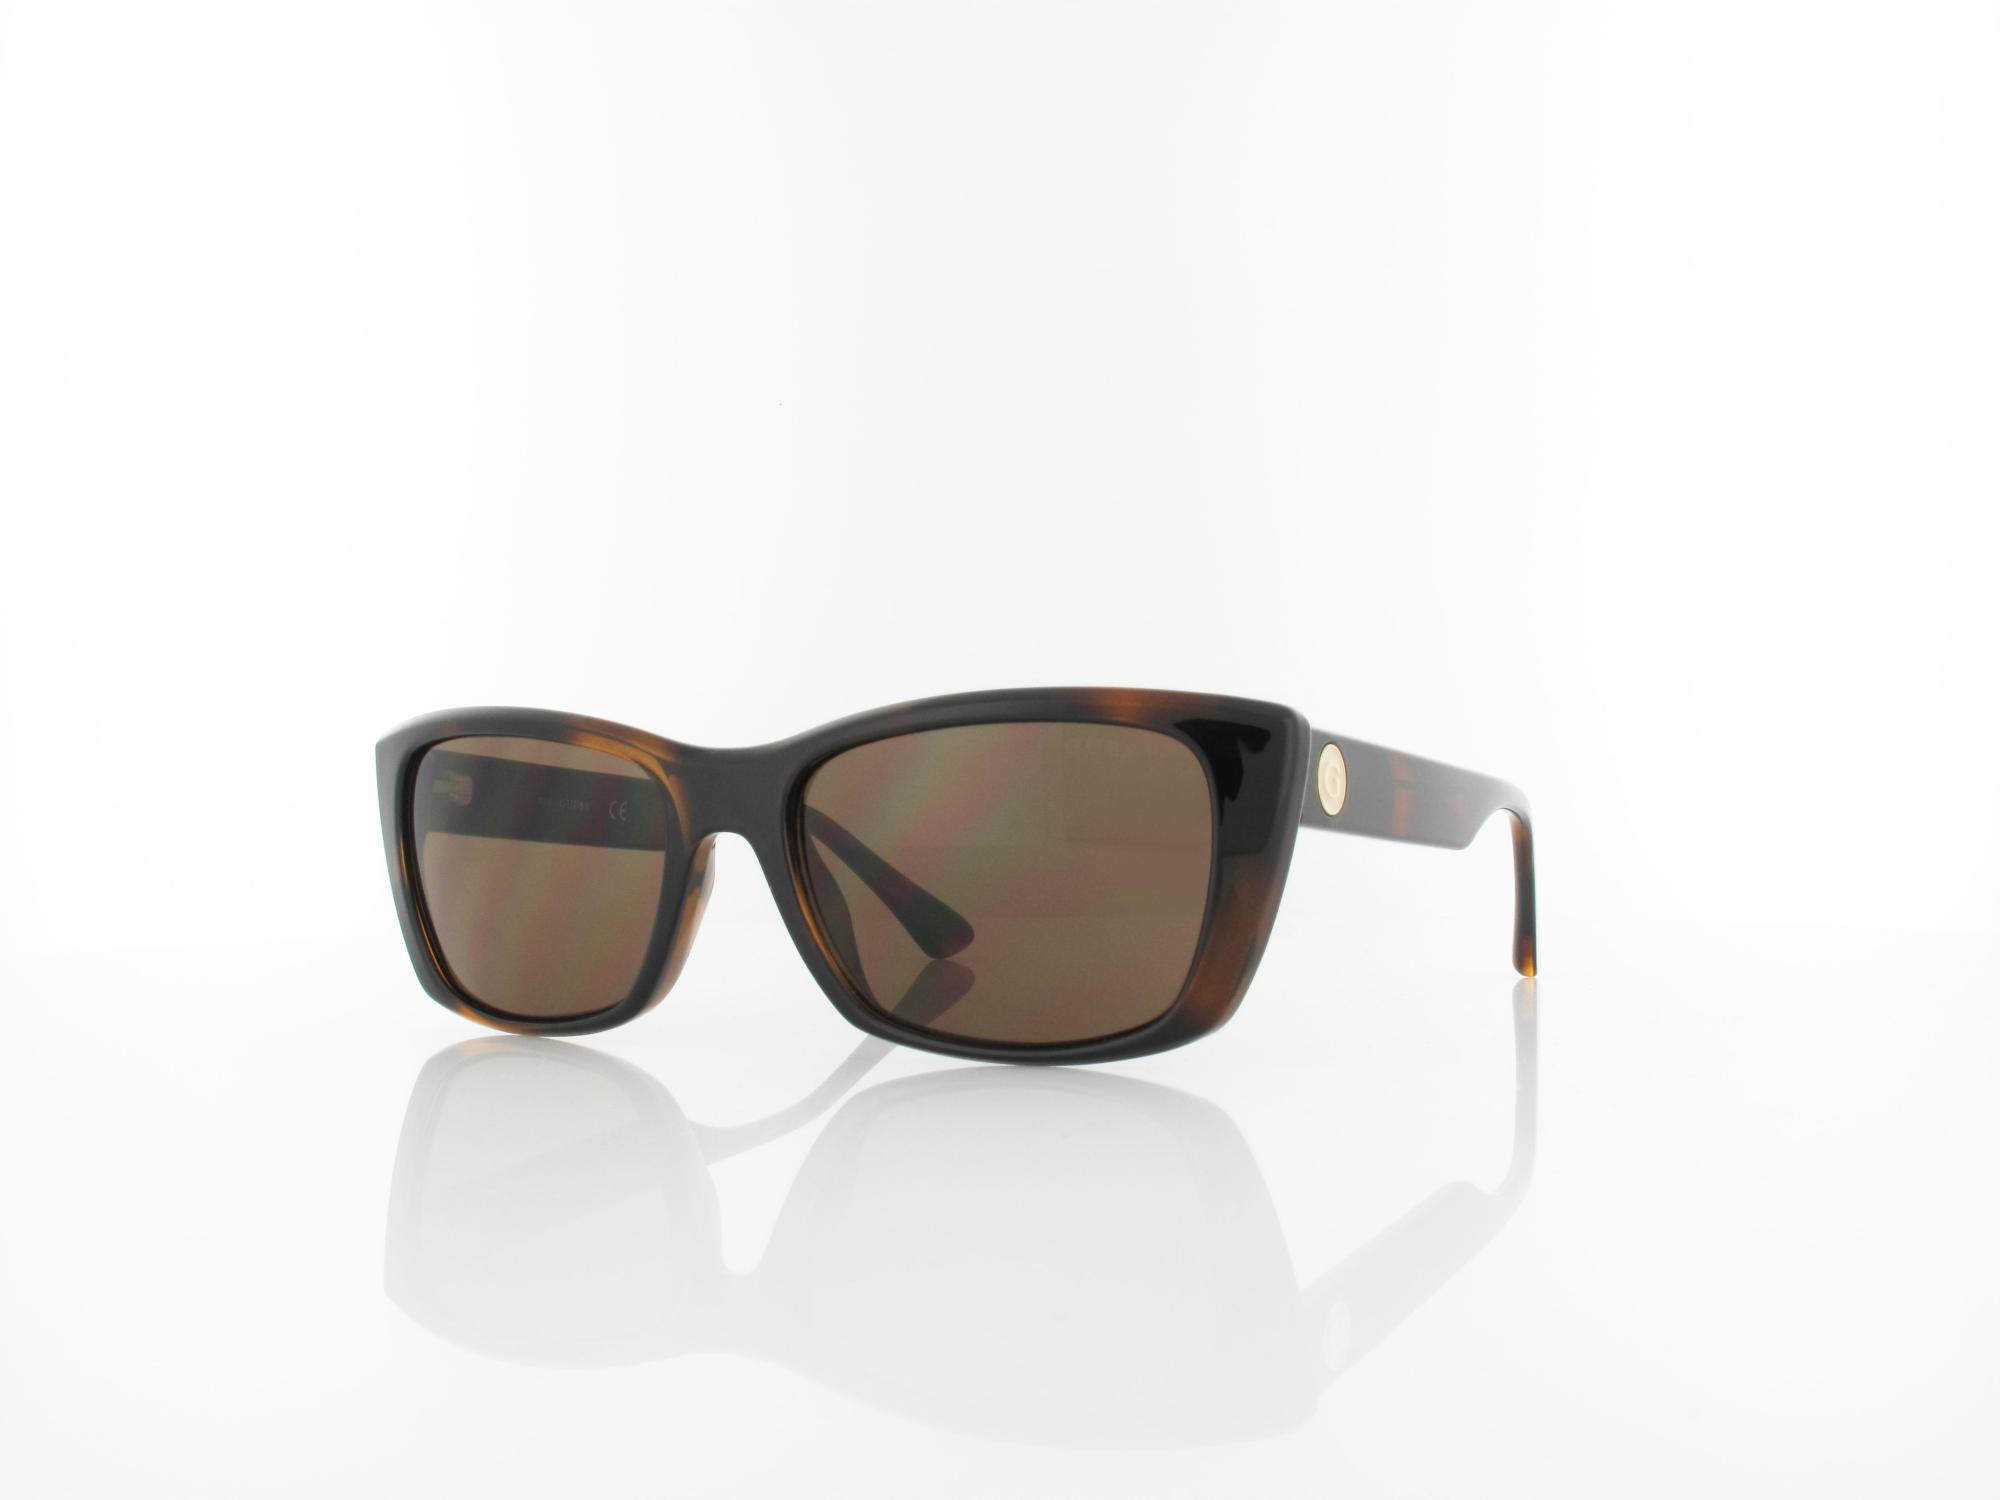 Guess | GU7652 52E 53 | dark havana / brown